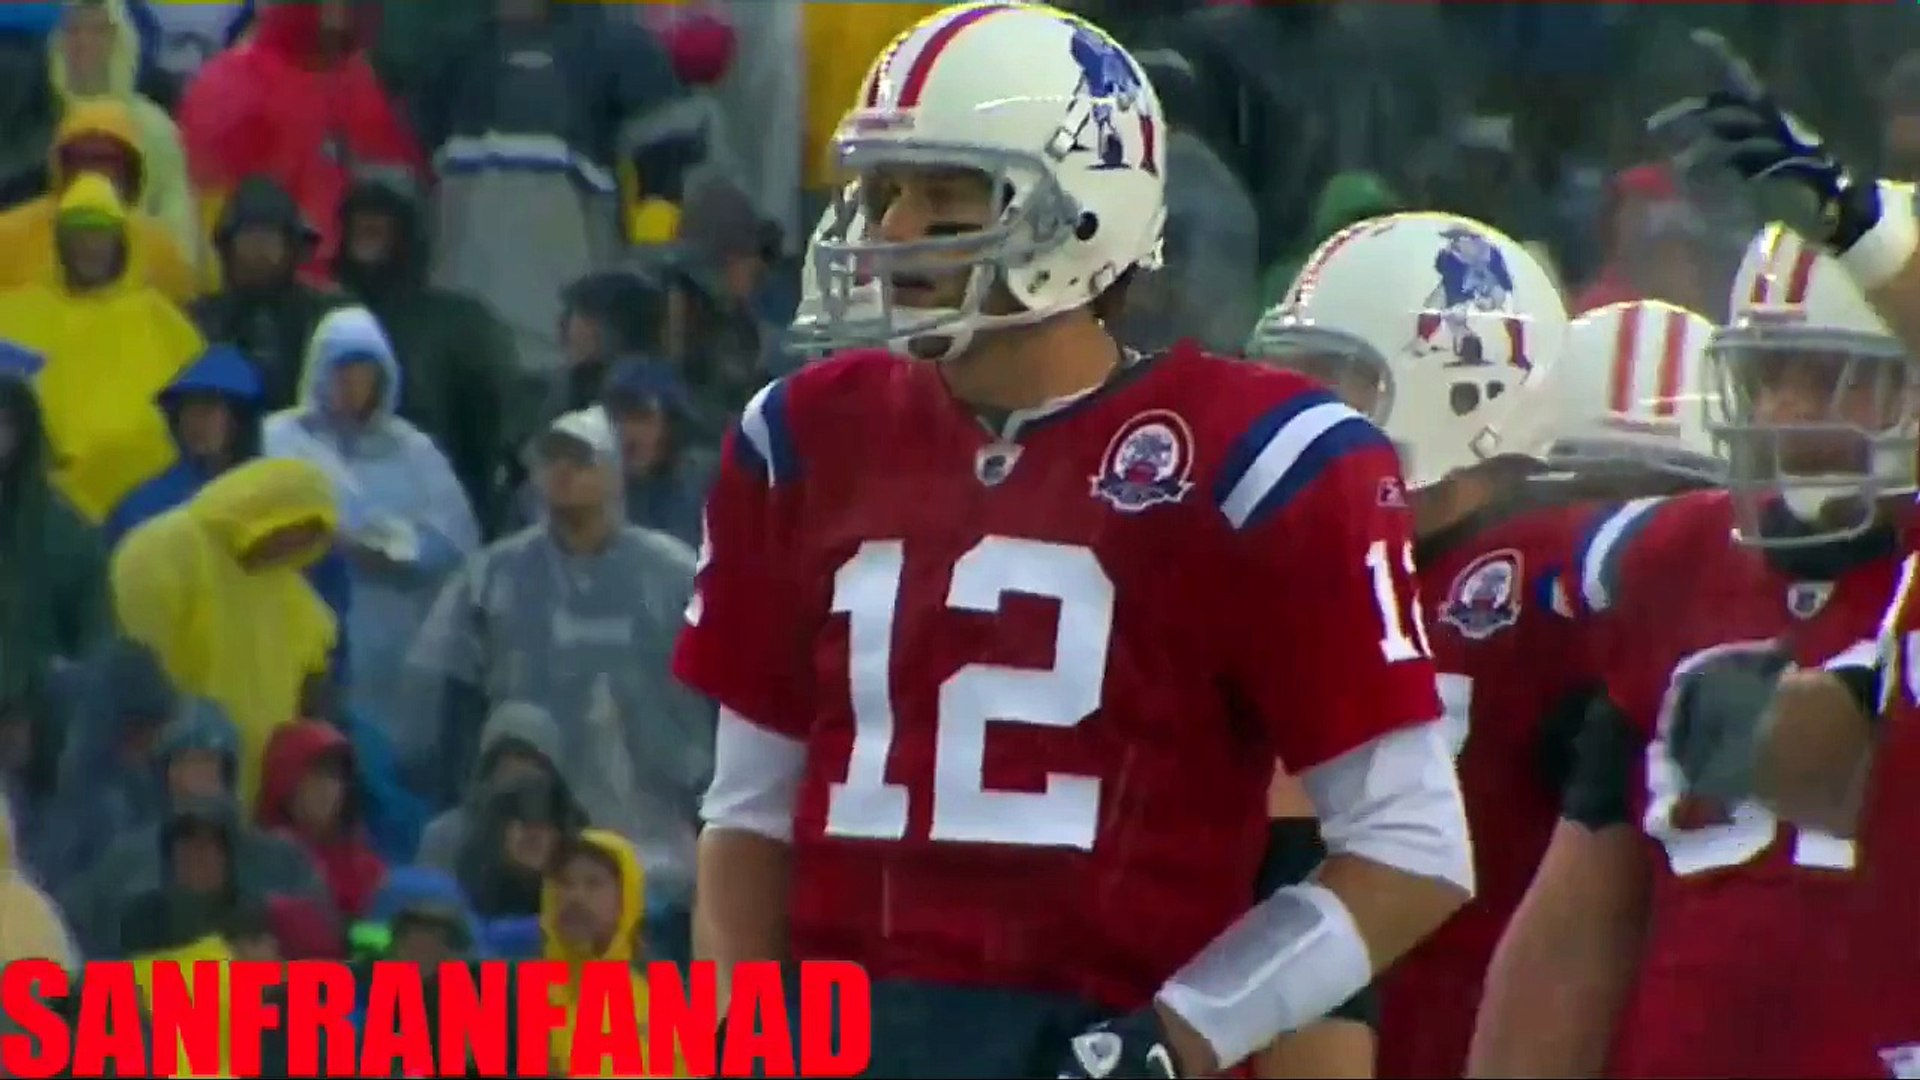 Tom Brady sets NFL record with 5 TD passes in ONE QUARTER v Titans (Week 6 - 2009) - NFL Highlights